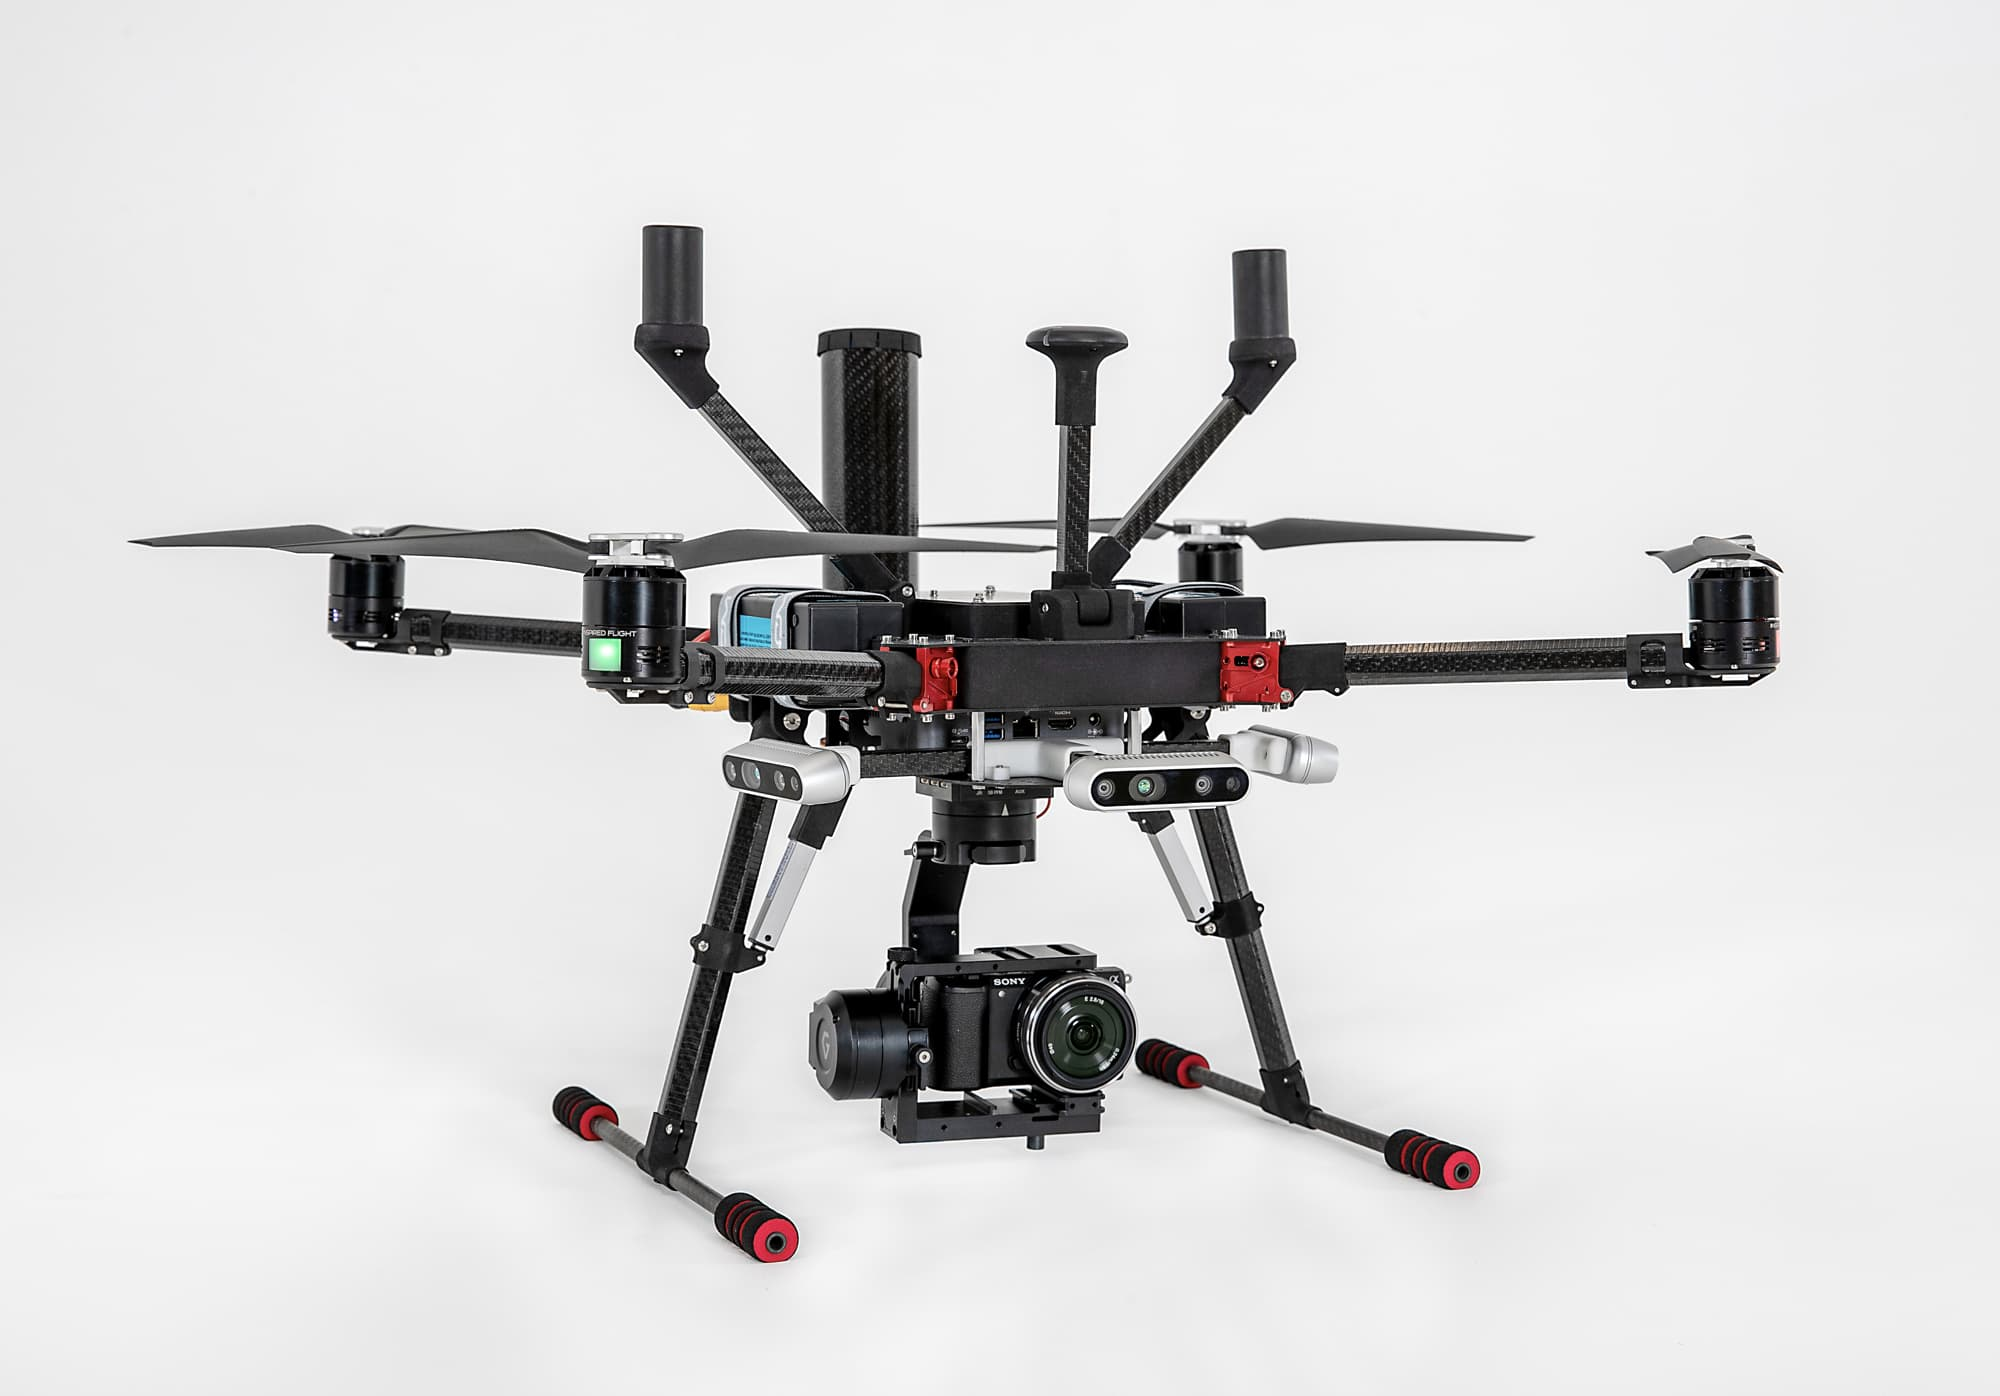 Helo-copter drone photographed in studio against white background